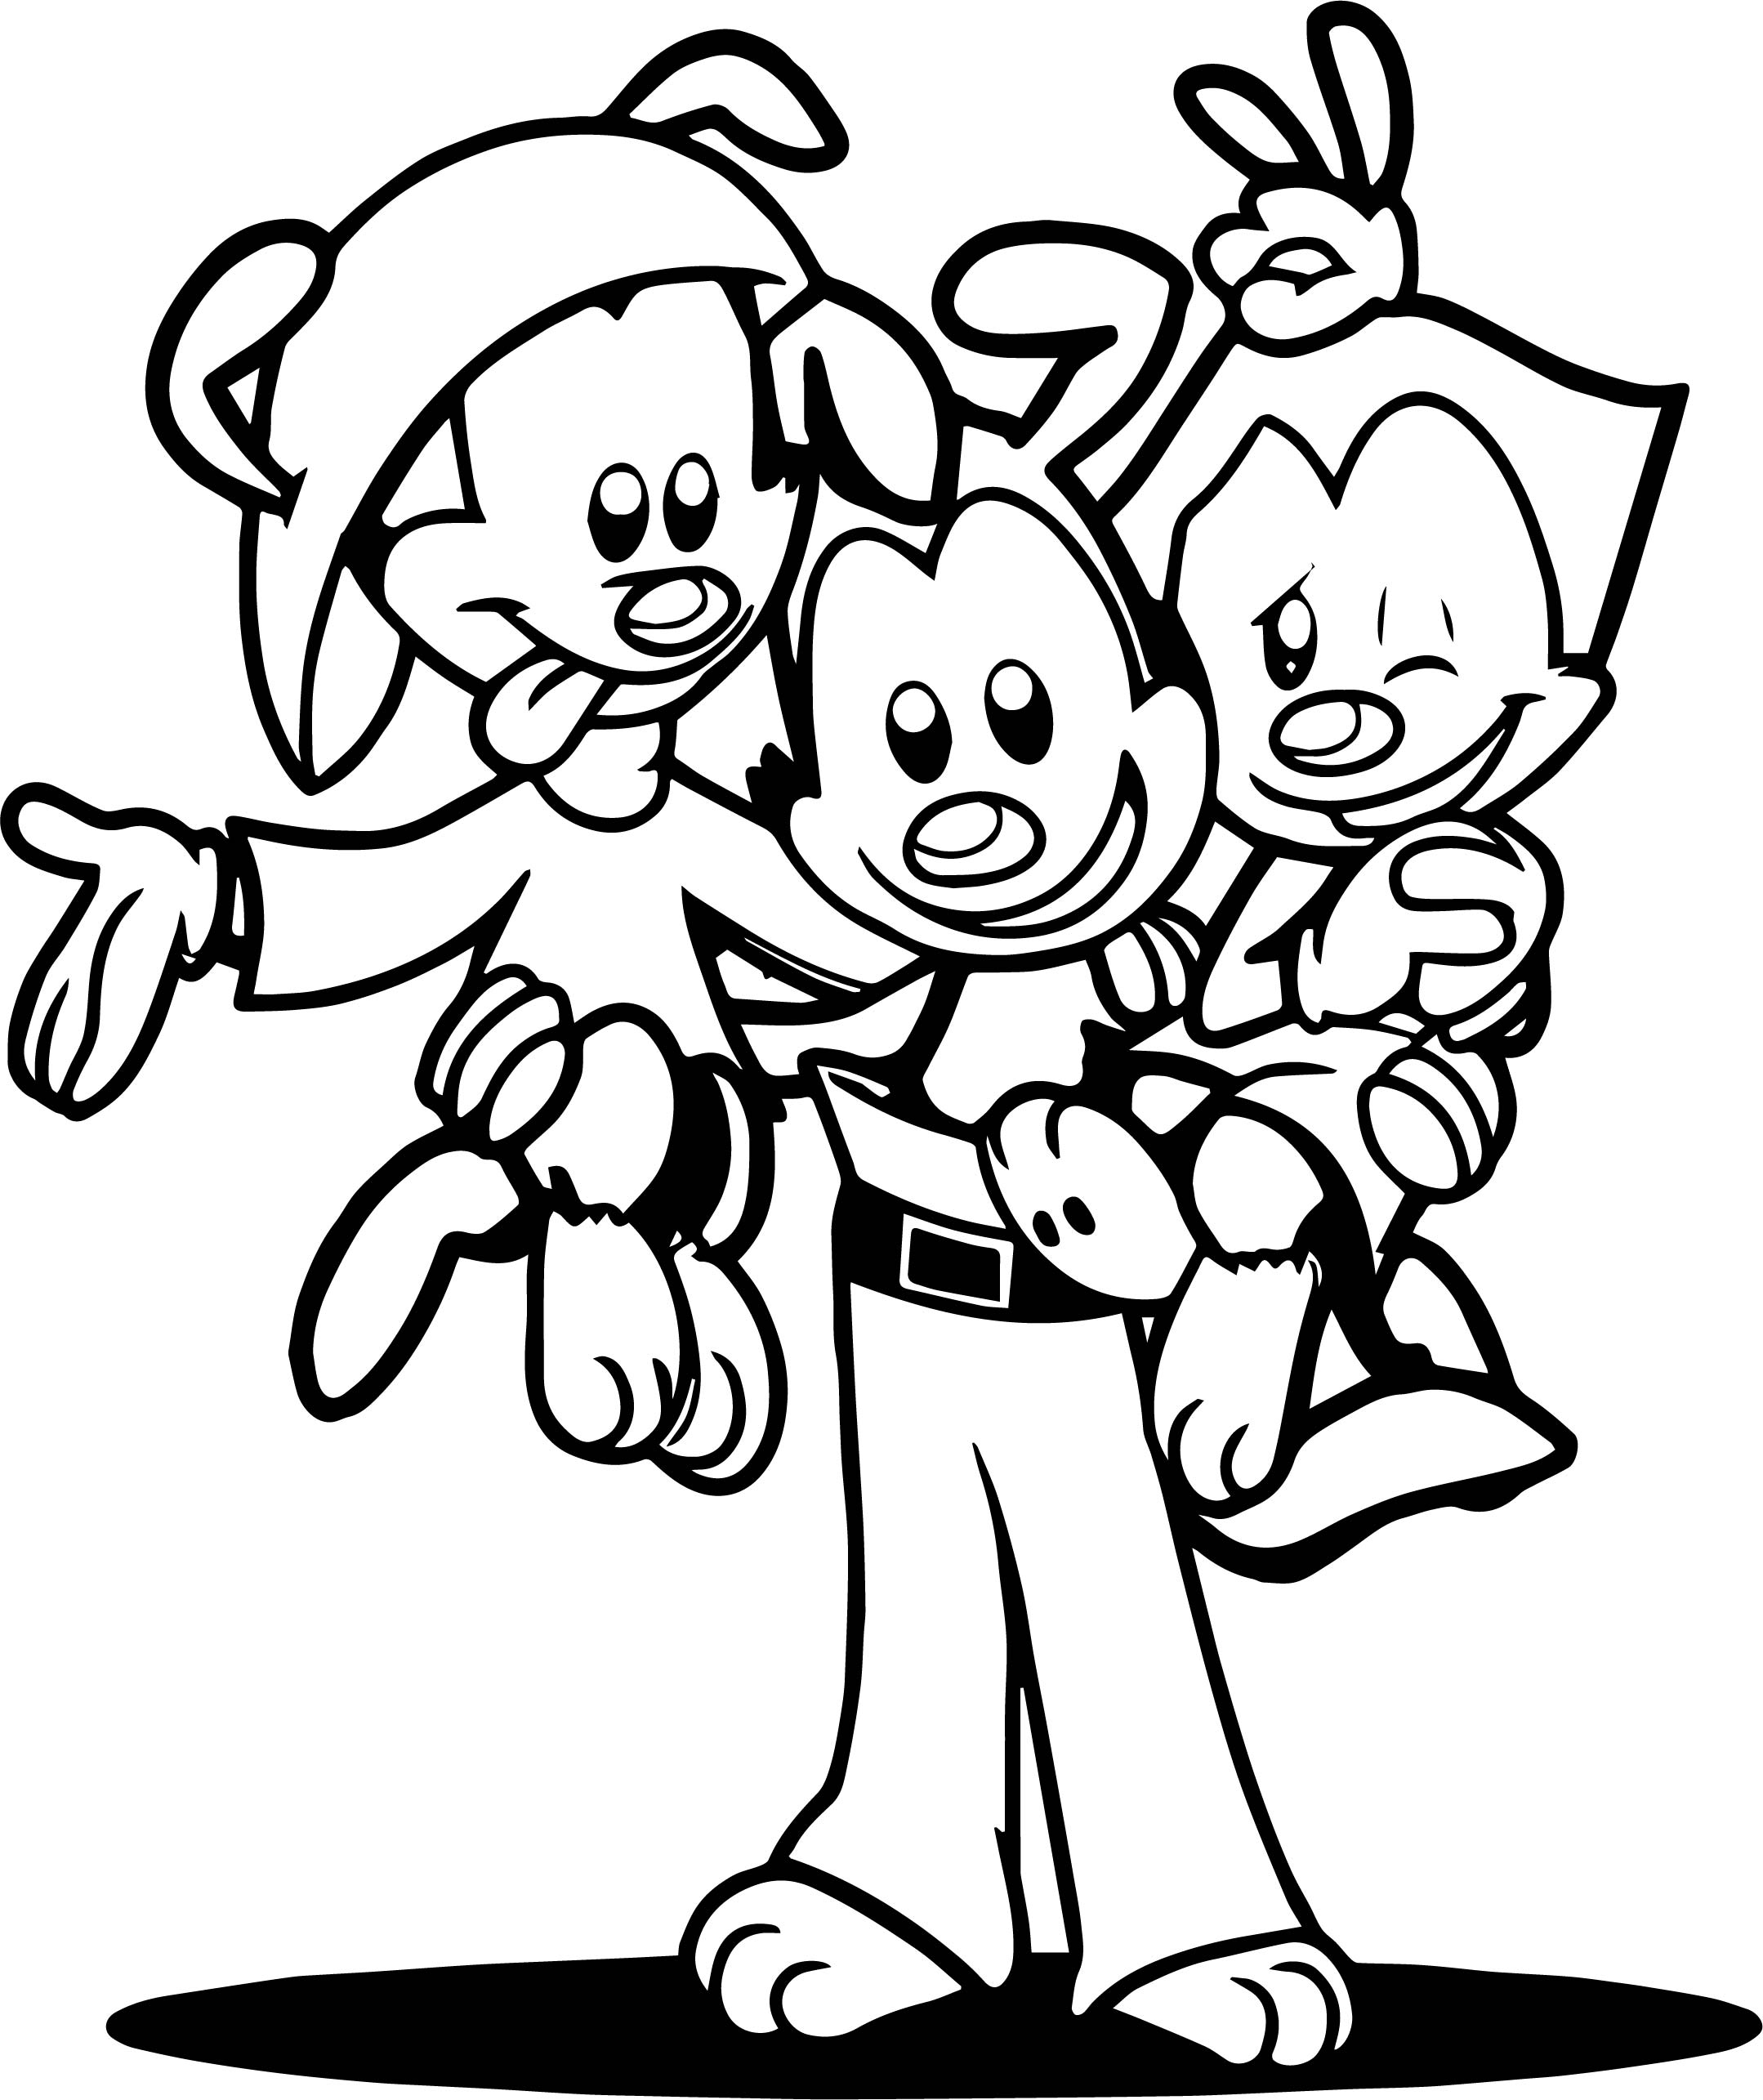 Animaniacs warner siblings coloring page for Animaniacs coloring pages